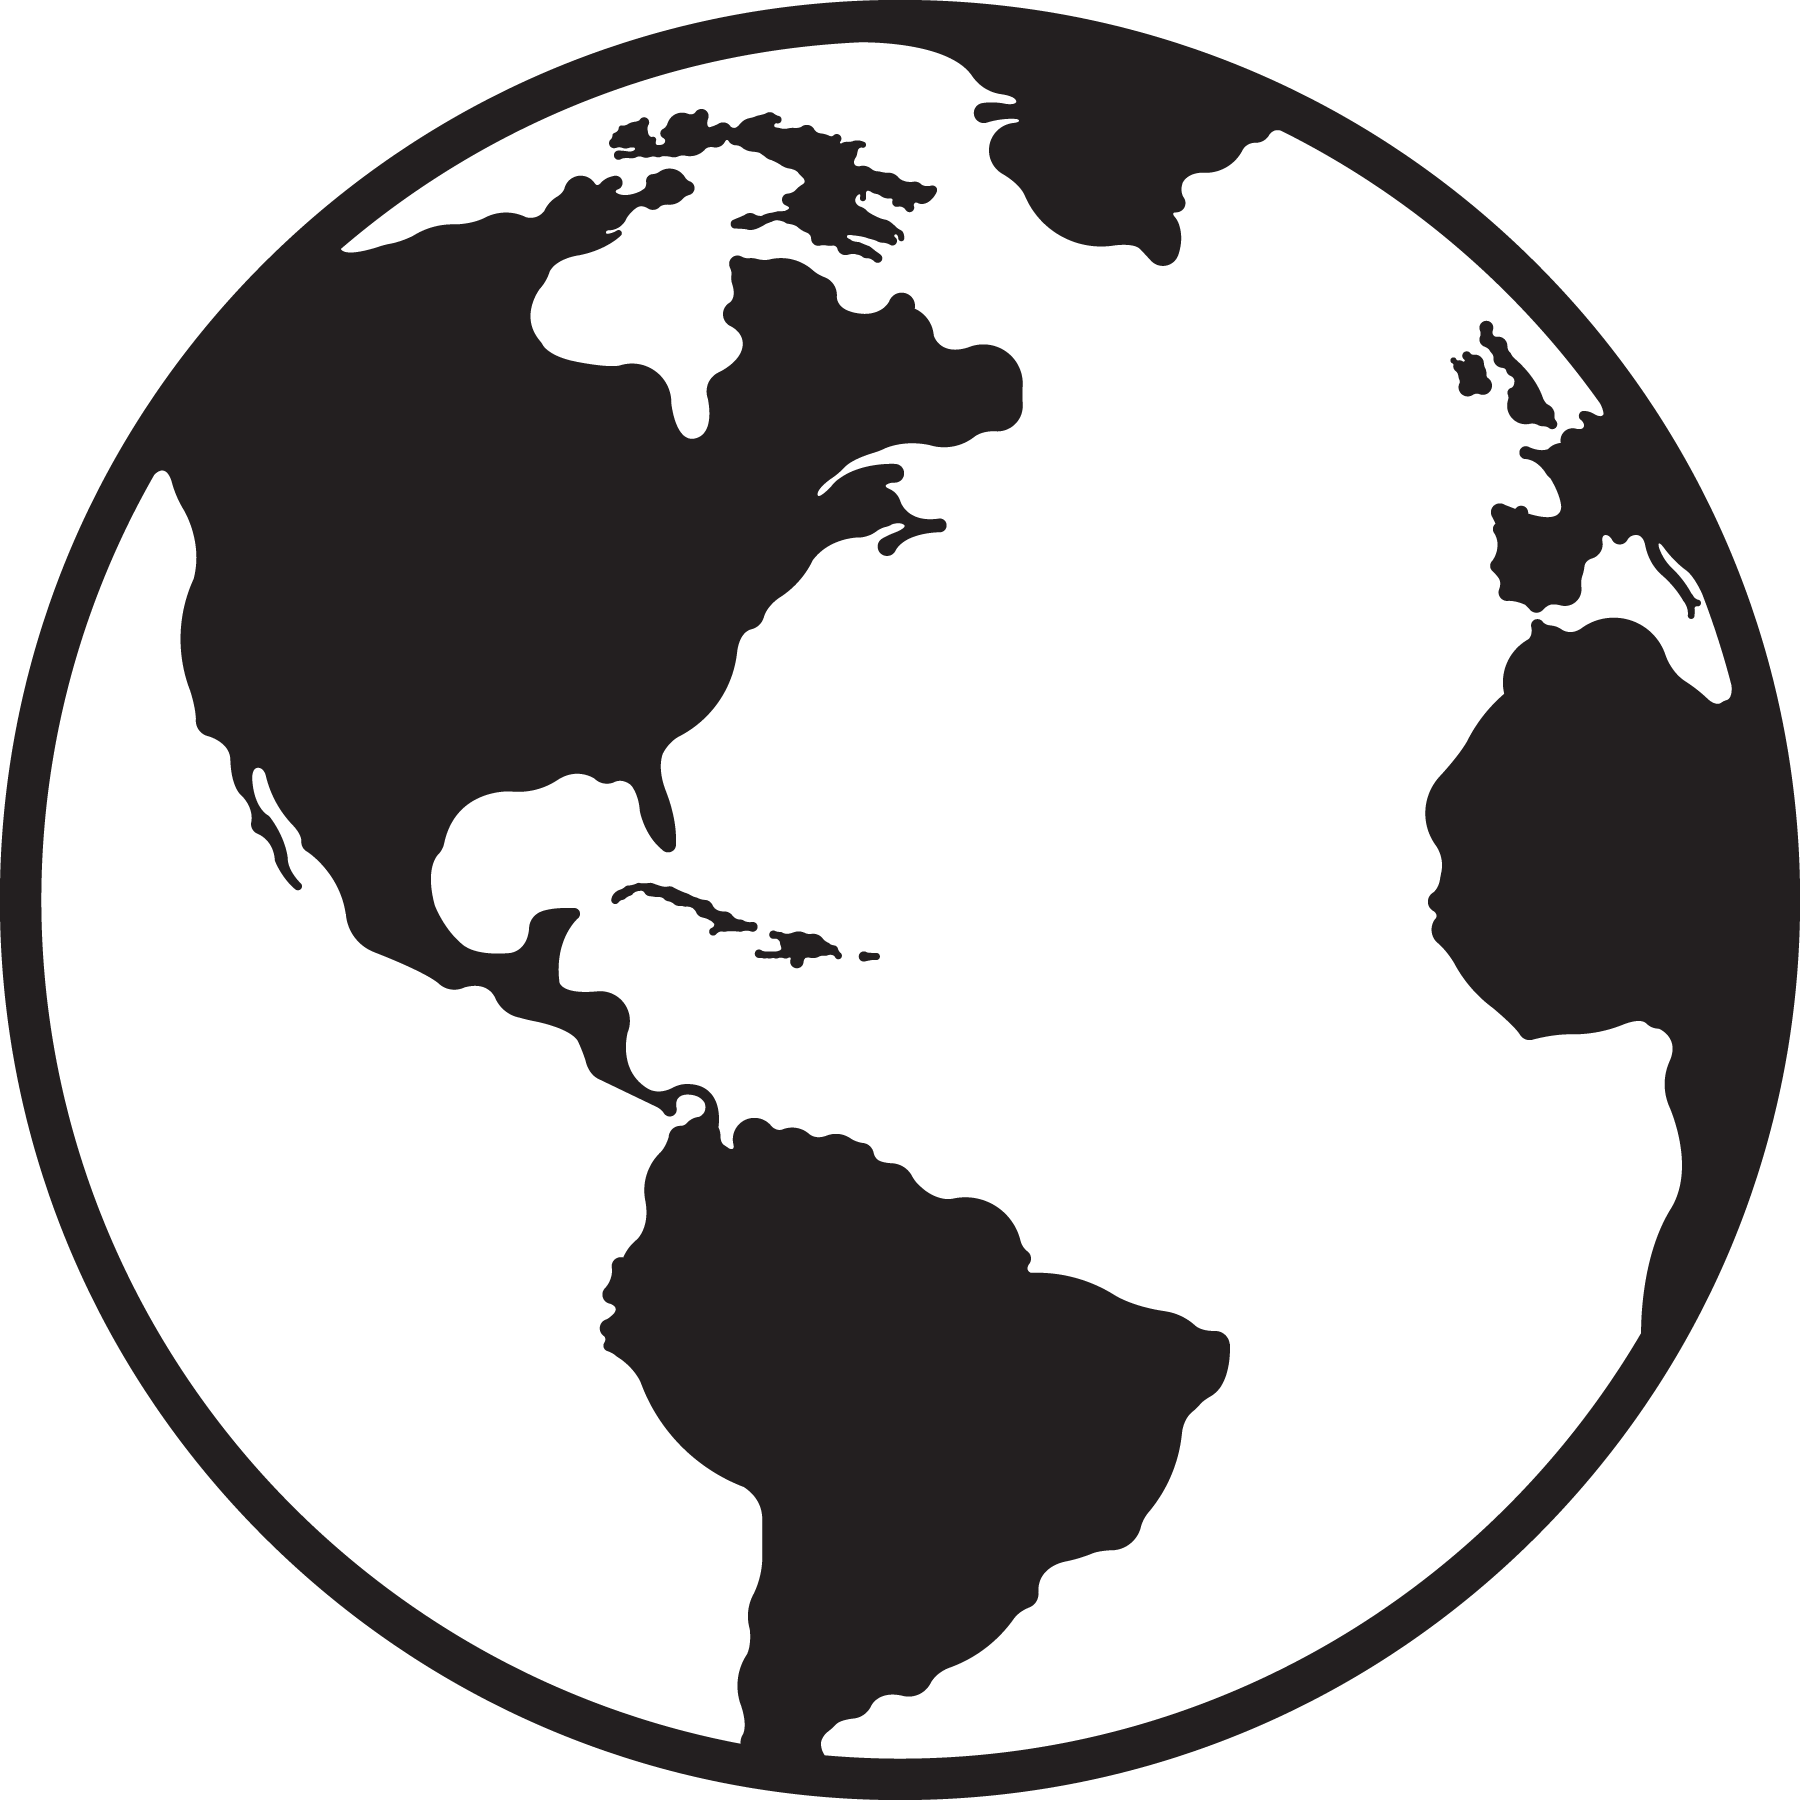 collection of earth. Clipart world black and white